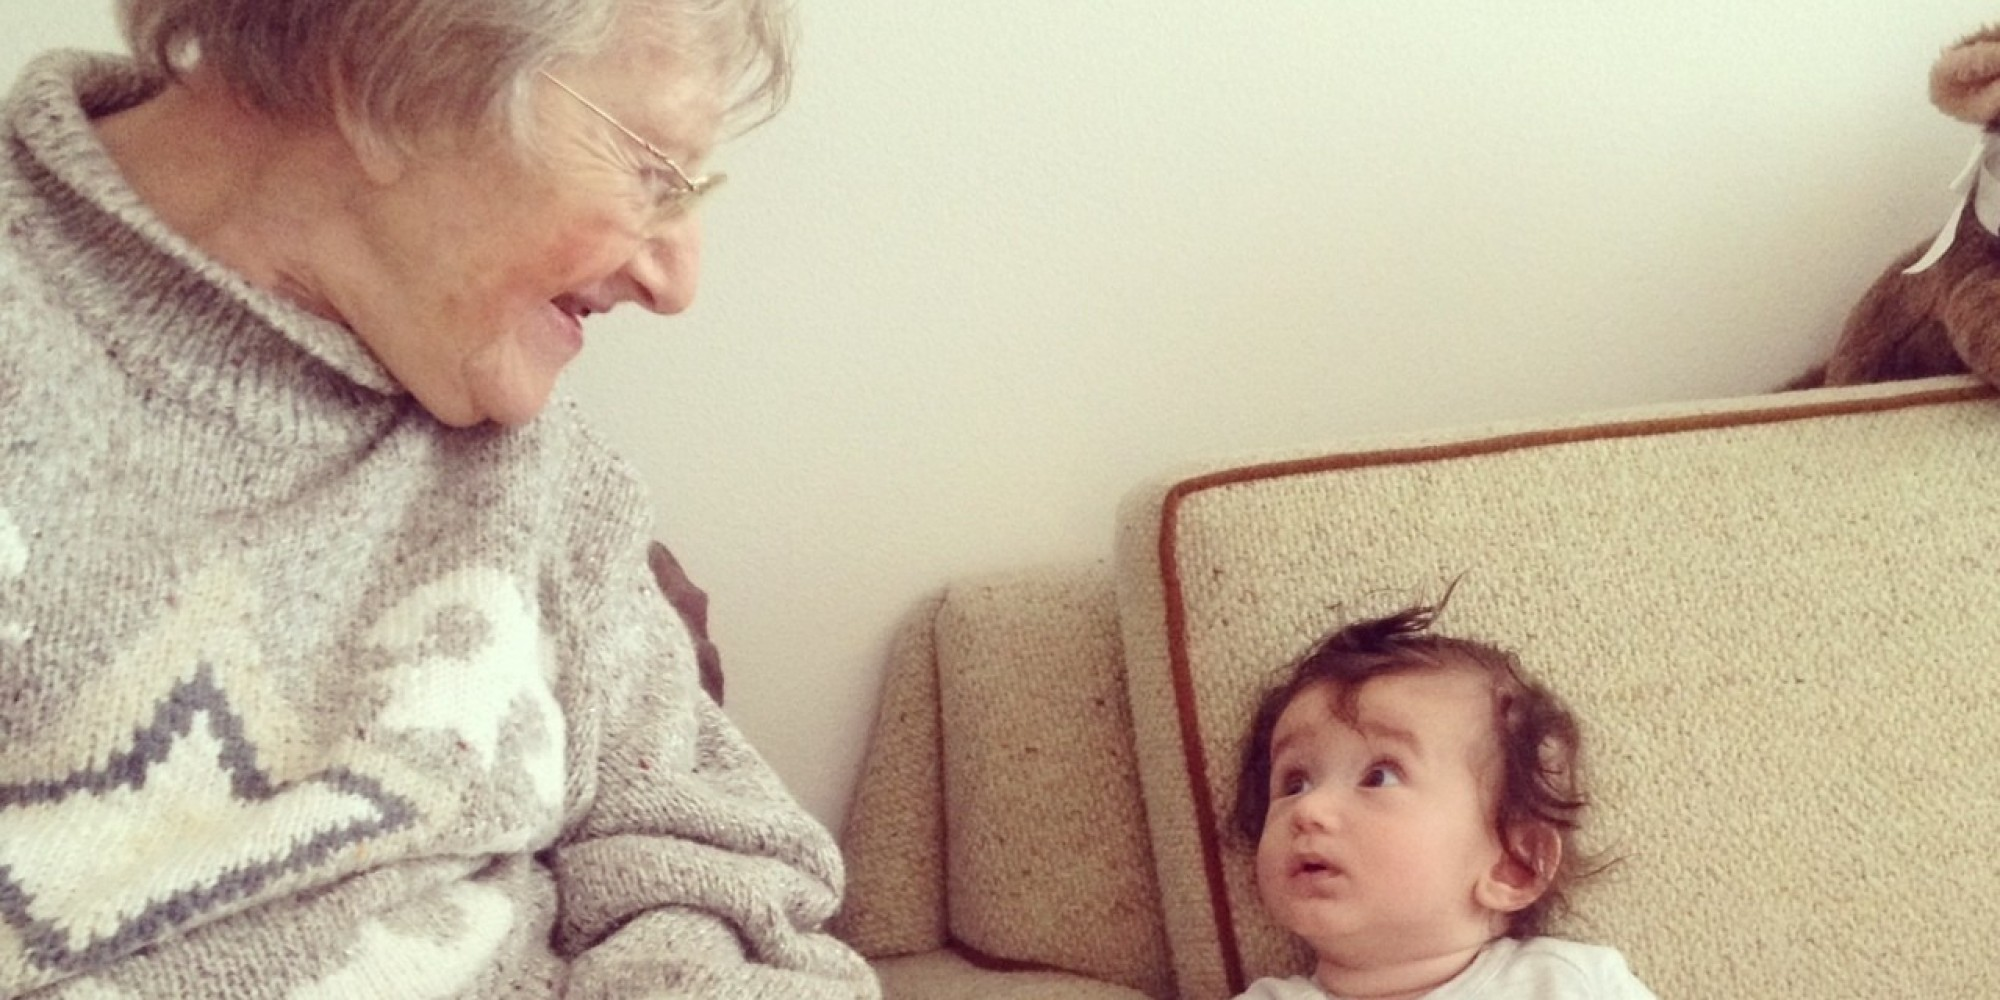 essay on why grandparents are important Grandparents are important because you can learn a lot from them, they also nurture you iin a different way to they way your parents do this is one of the most difficult questions to answer you.